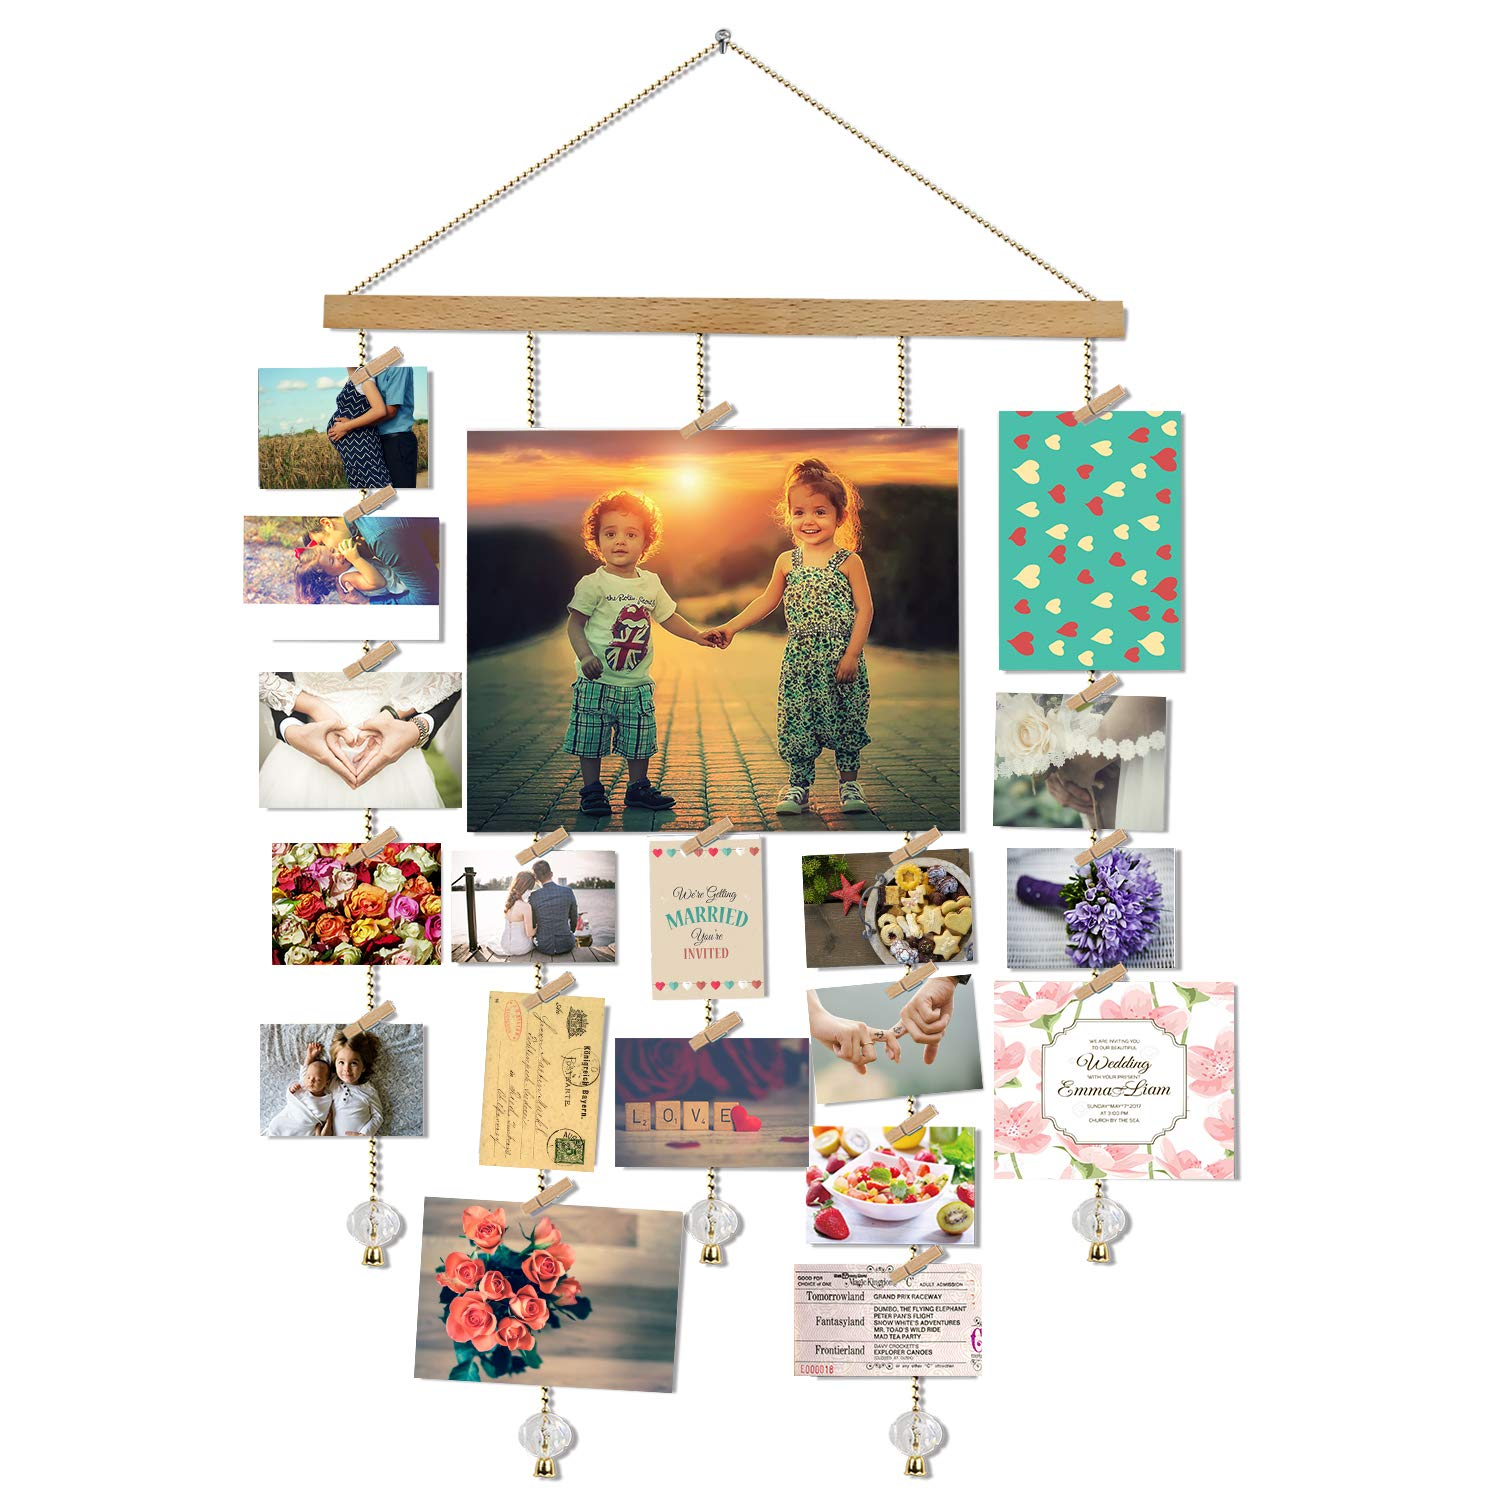 O-KIS Hanging Photo Display, DIY Picture Photo Frame Collage Set Includes Wood Clips, Natural Wood, Golden Chain with Crystal Pendant 16×29 inch Natural Color